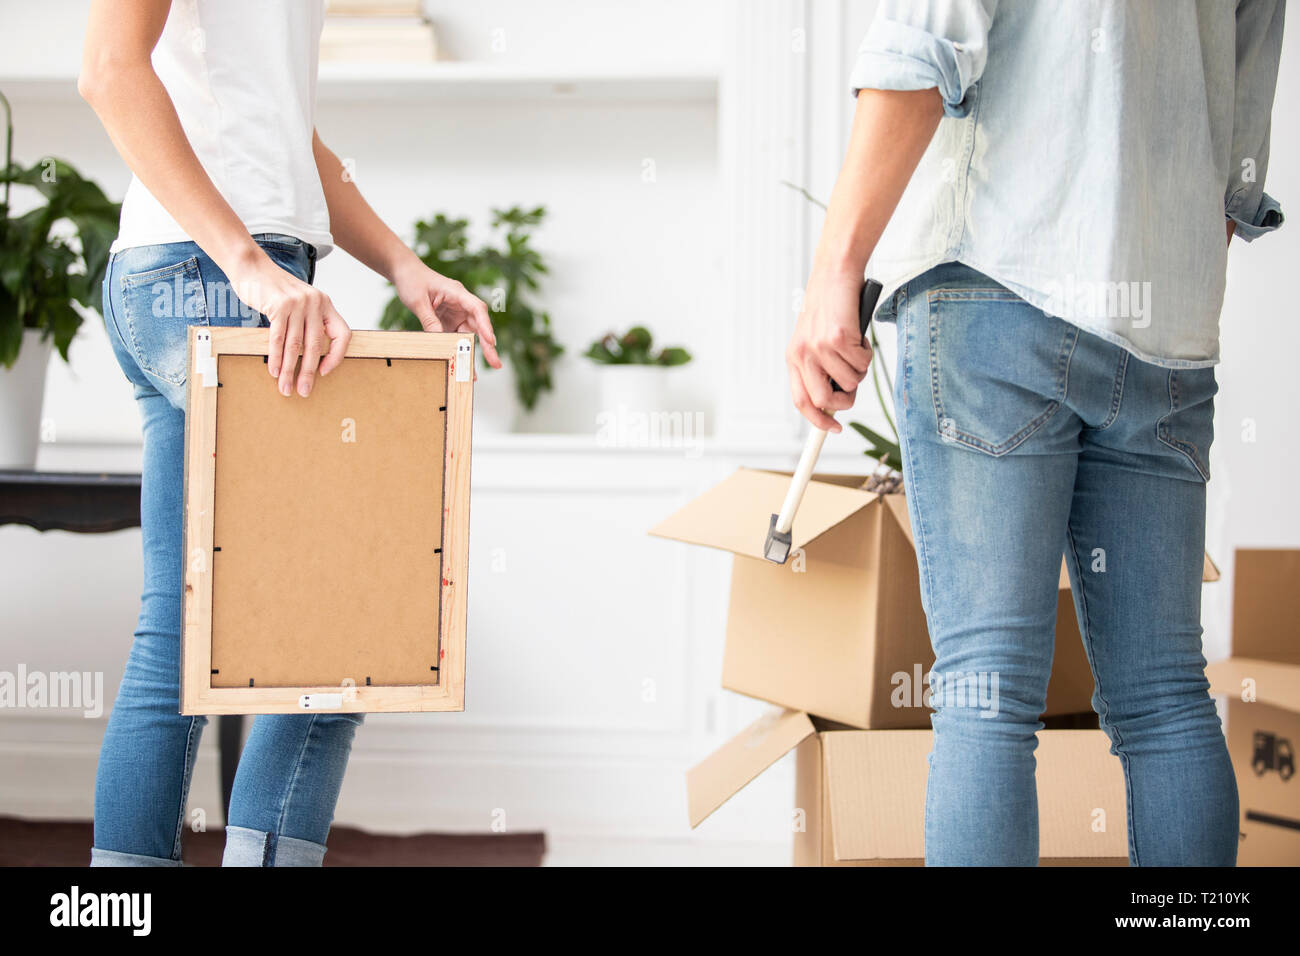 Close-up of couple furnishing new home - Stock Image